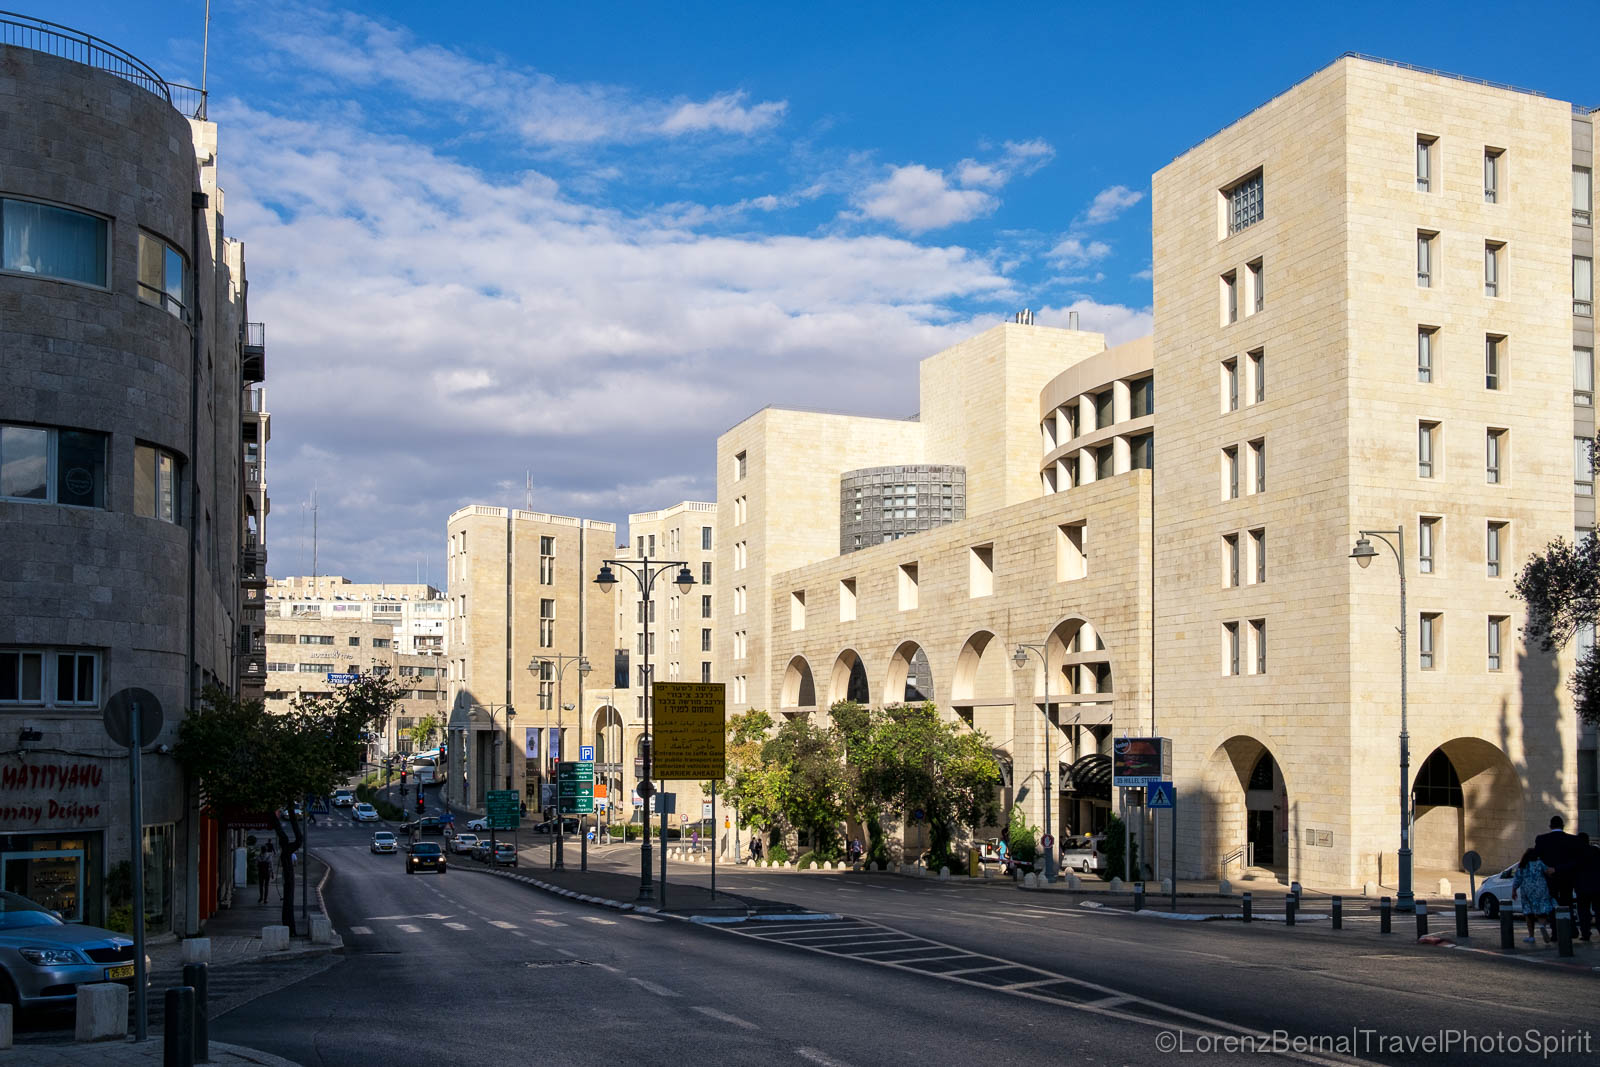 Street view of a modern part of Jerusalem city, Israel.